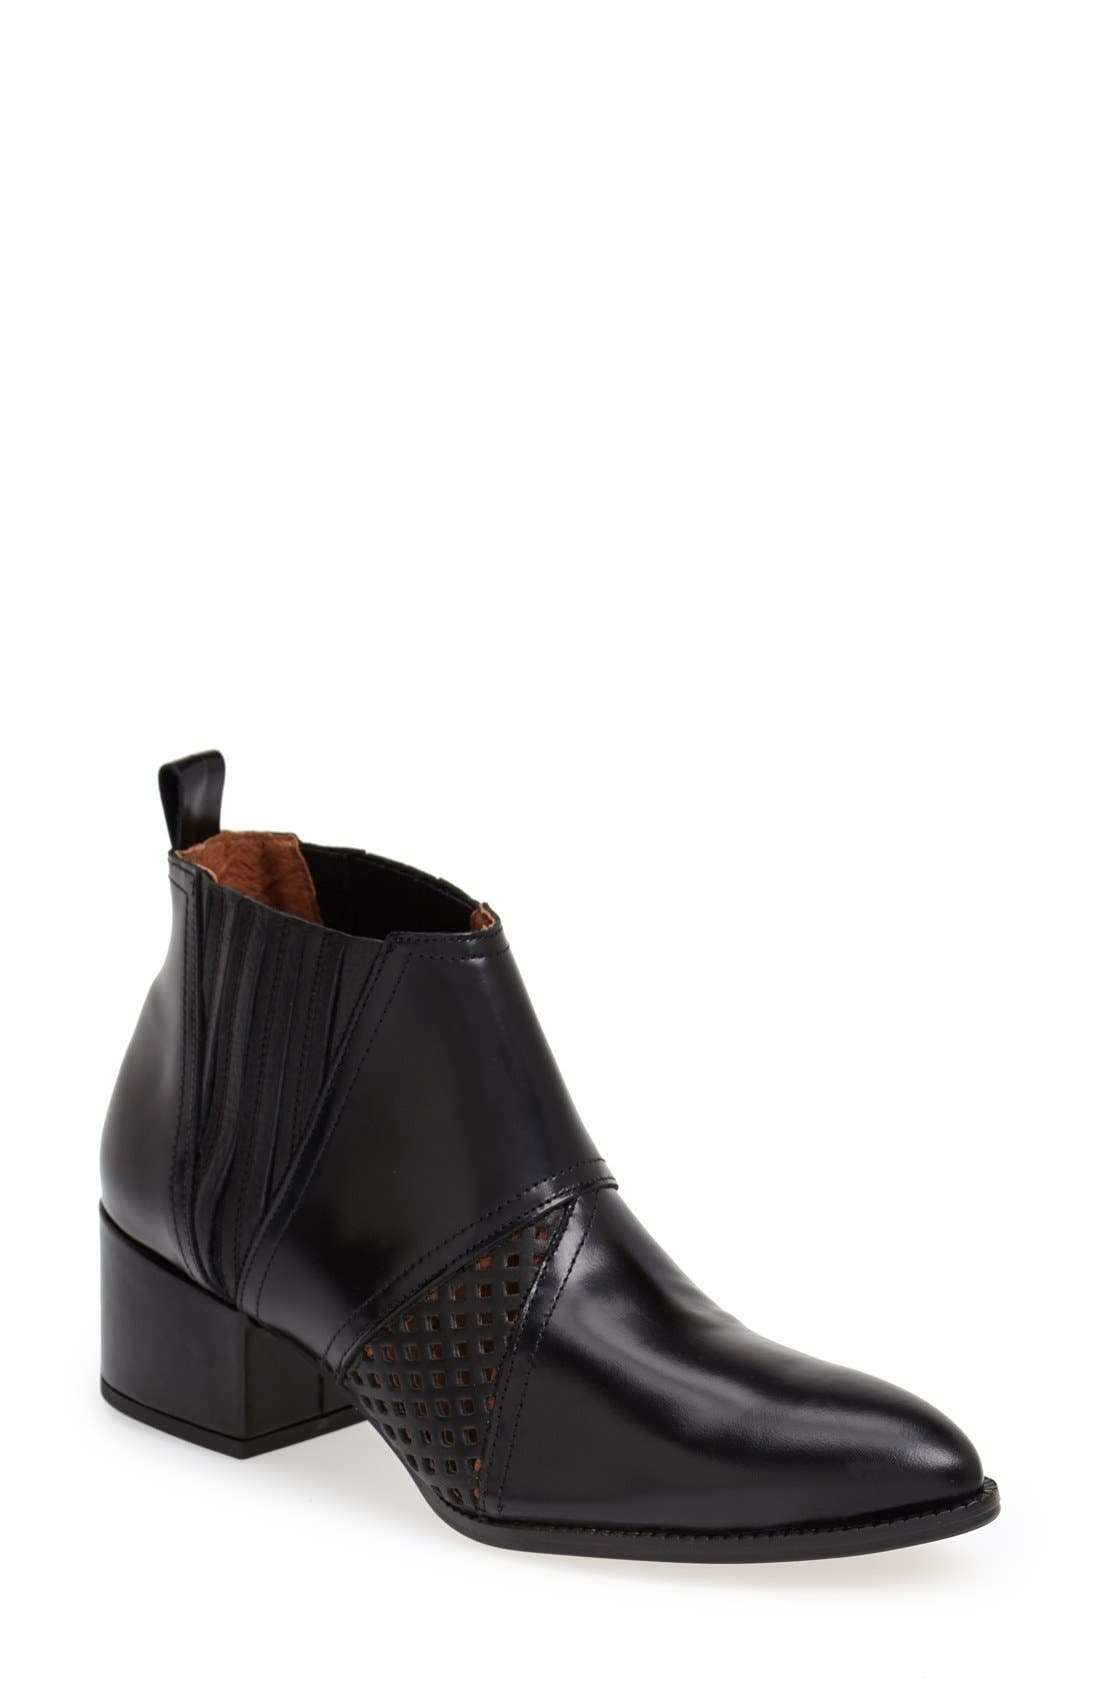 Alternate Image 1 Selected - SIXTYSEVEN 'Aria' Perforated Leather Bootie (Women)